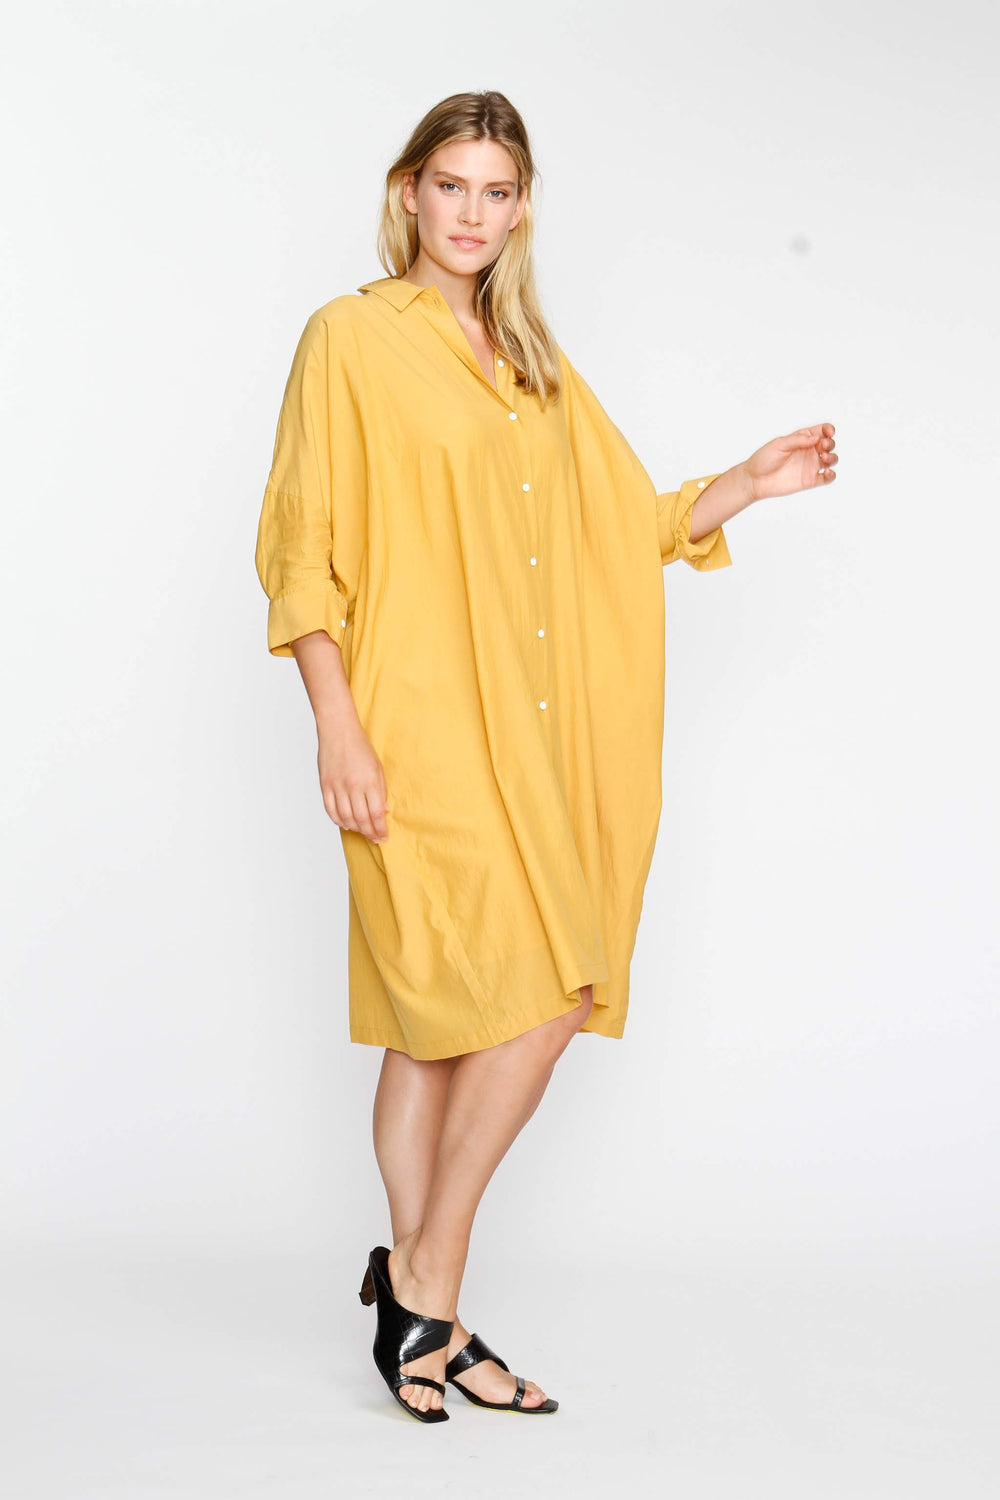 The Shirt Dress - Mustard - The Frock NYC